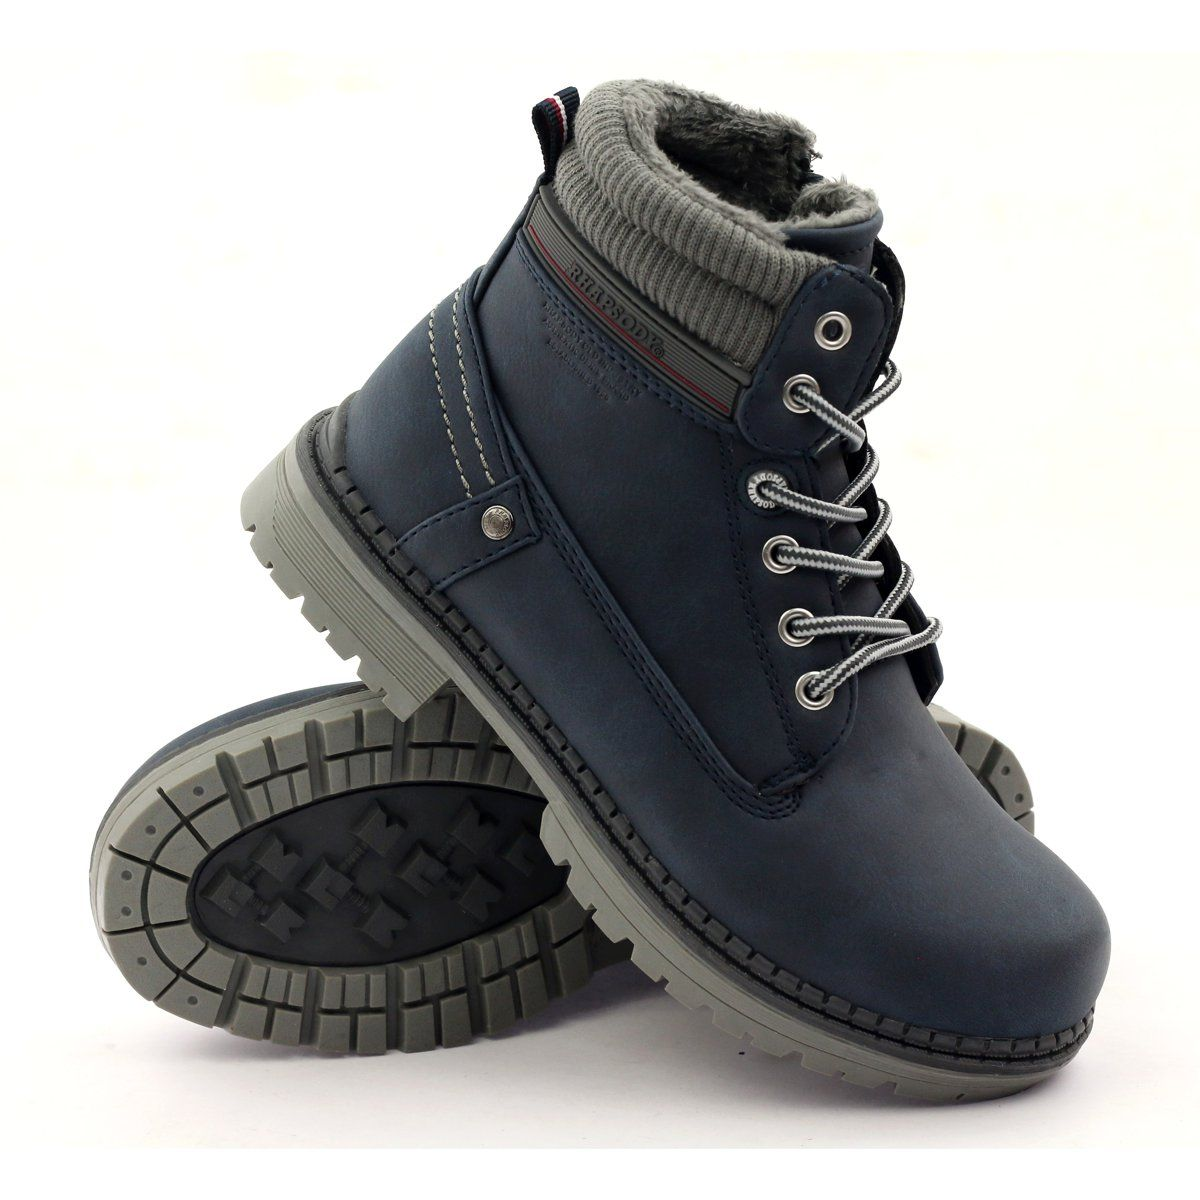 American Club Boots Shoes American 808123 Slider Navy Grey Boots Shoe Boots Childrens Boots